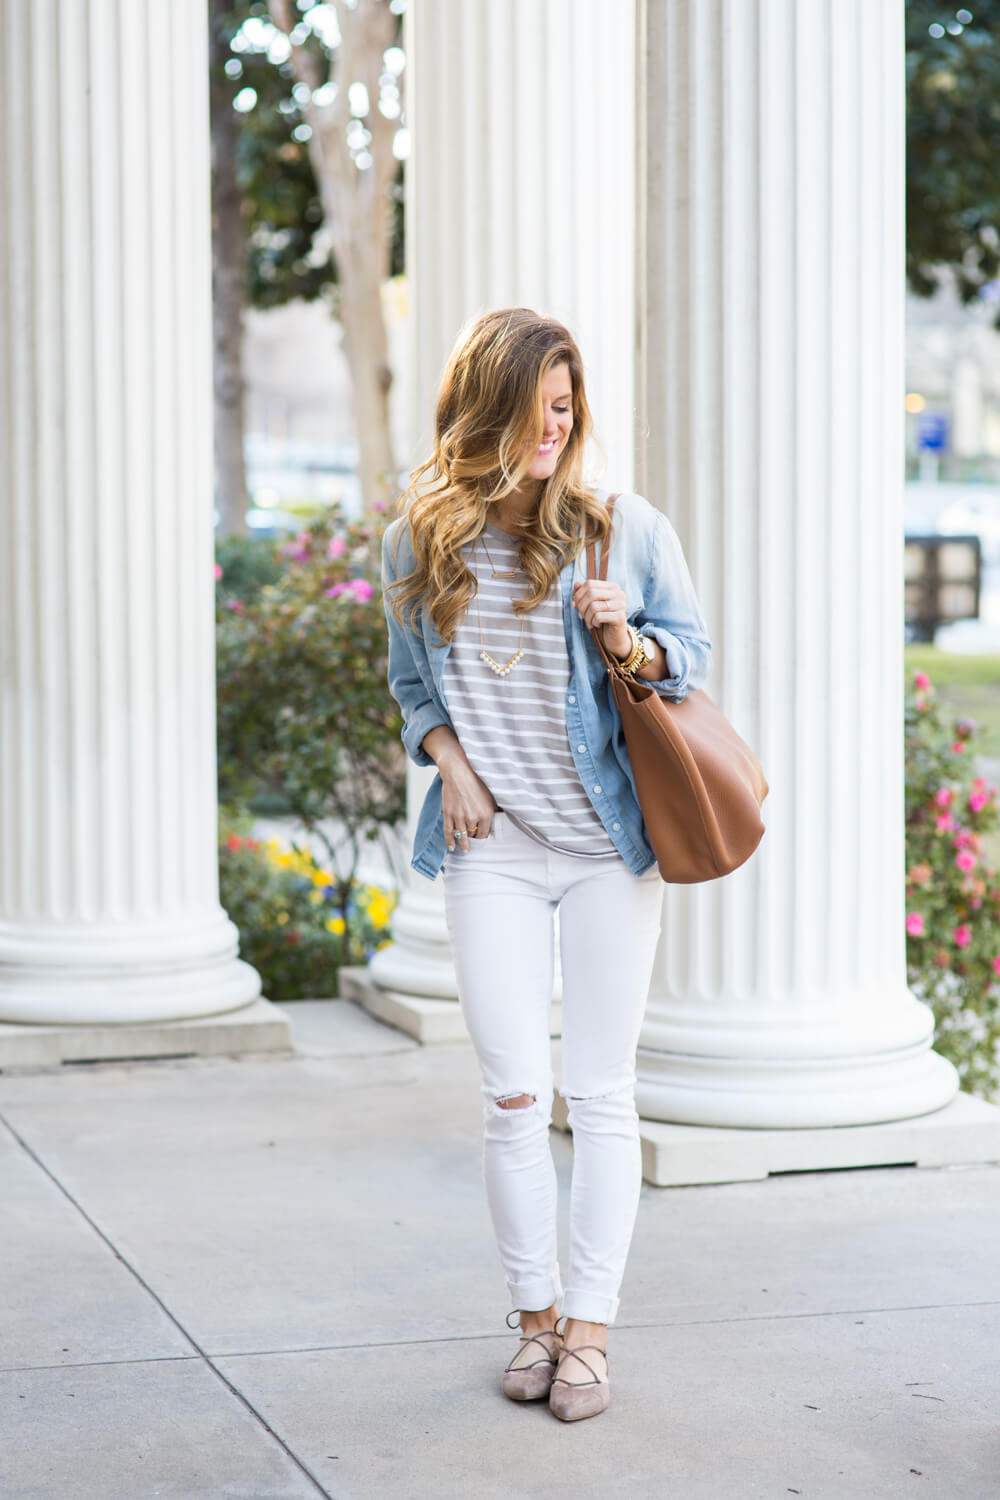 white jeans, neutral stripes, gigi new york tori tote cognac tote, stripes and white jeans, white jeans outfit, stuart weitzman taupe suede pointed toe flats, neutrals outfit, white jeans outfit, transitional style, chambray worn as jacket, chambray shirt outfit, how to wear a chambray shirt, denim shirt with striped tee